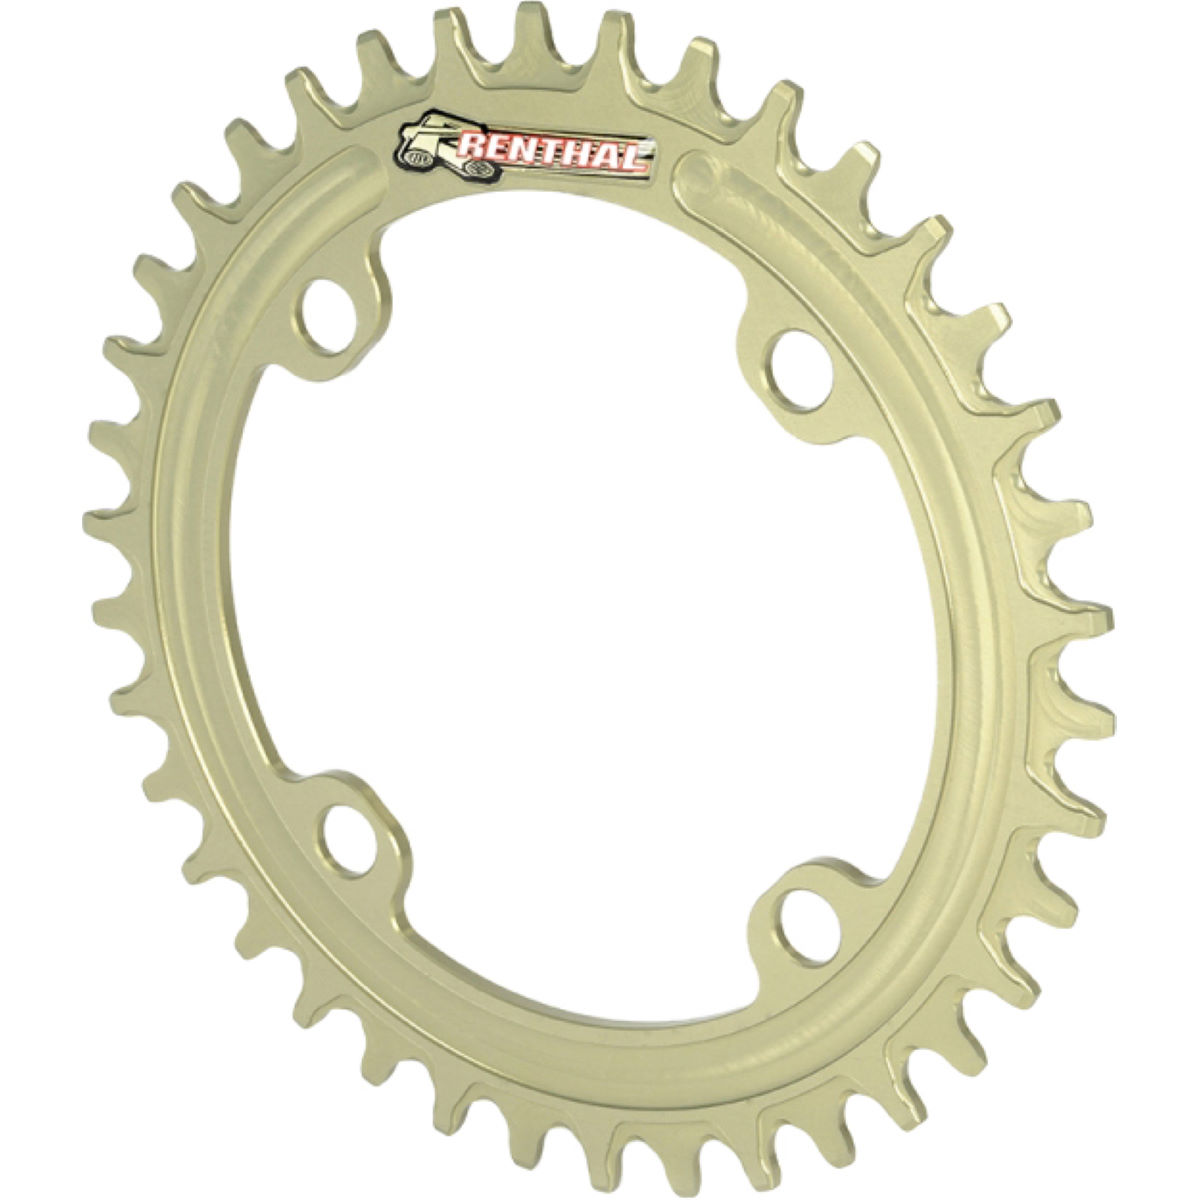 Renthal Renthal 1XR Chainring - SRAM   Chain Rings